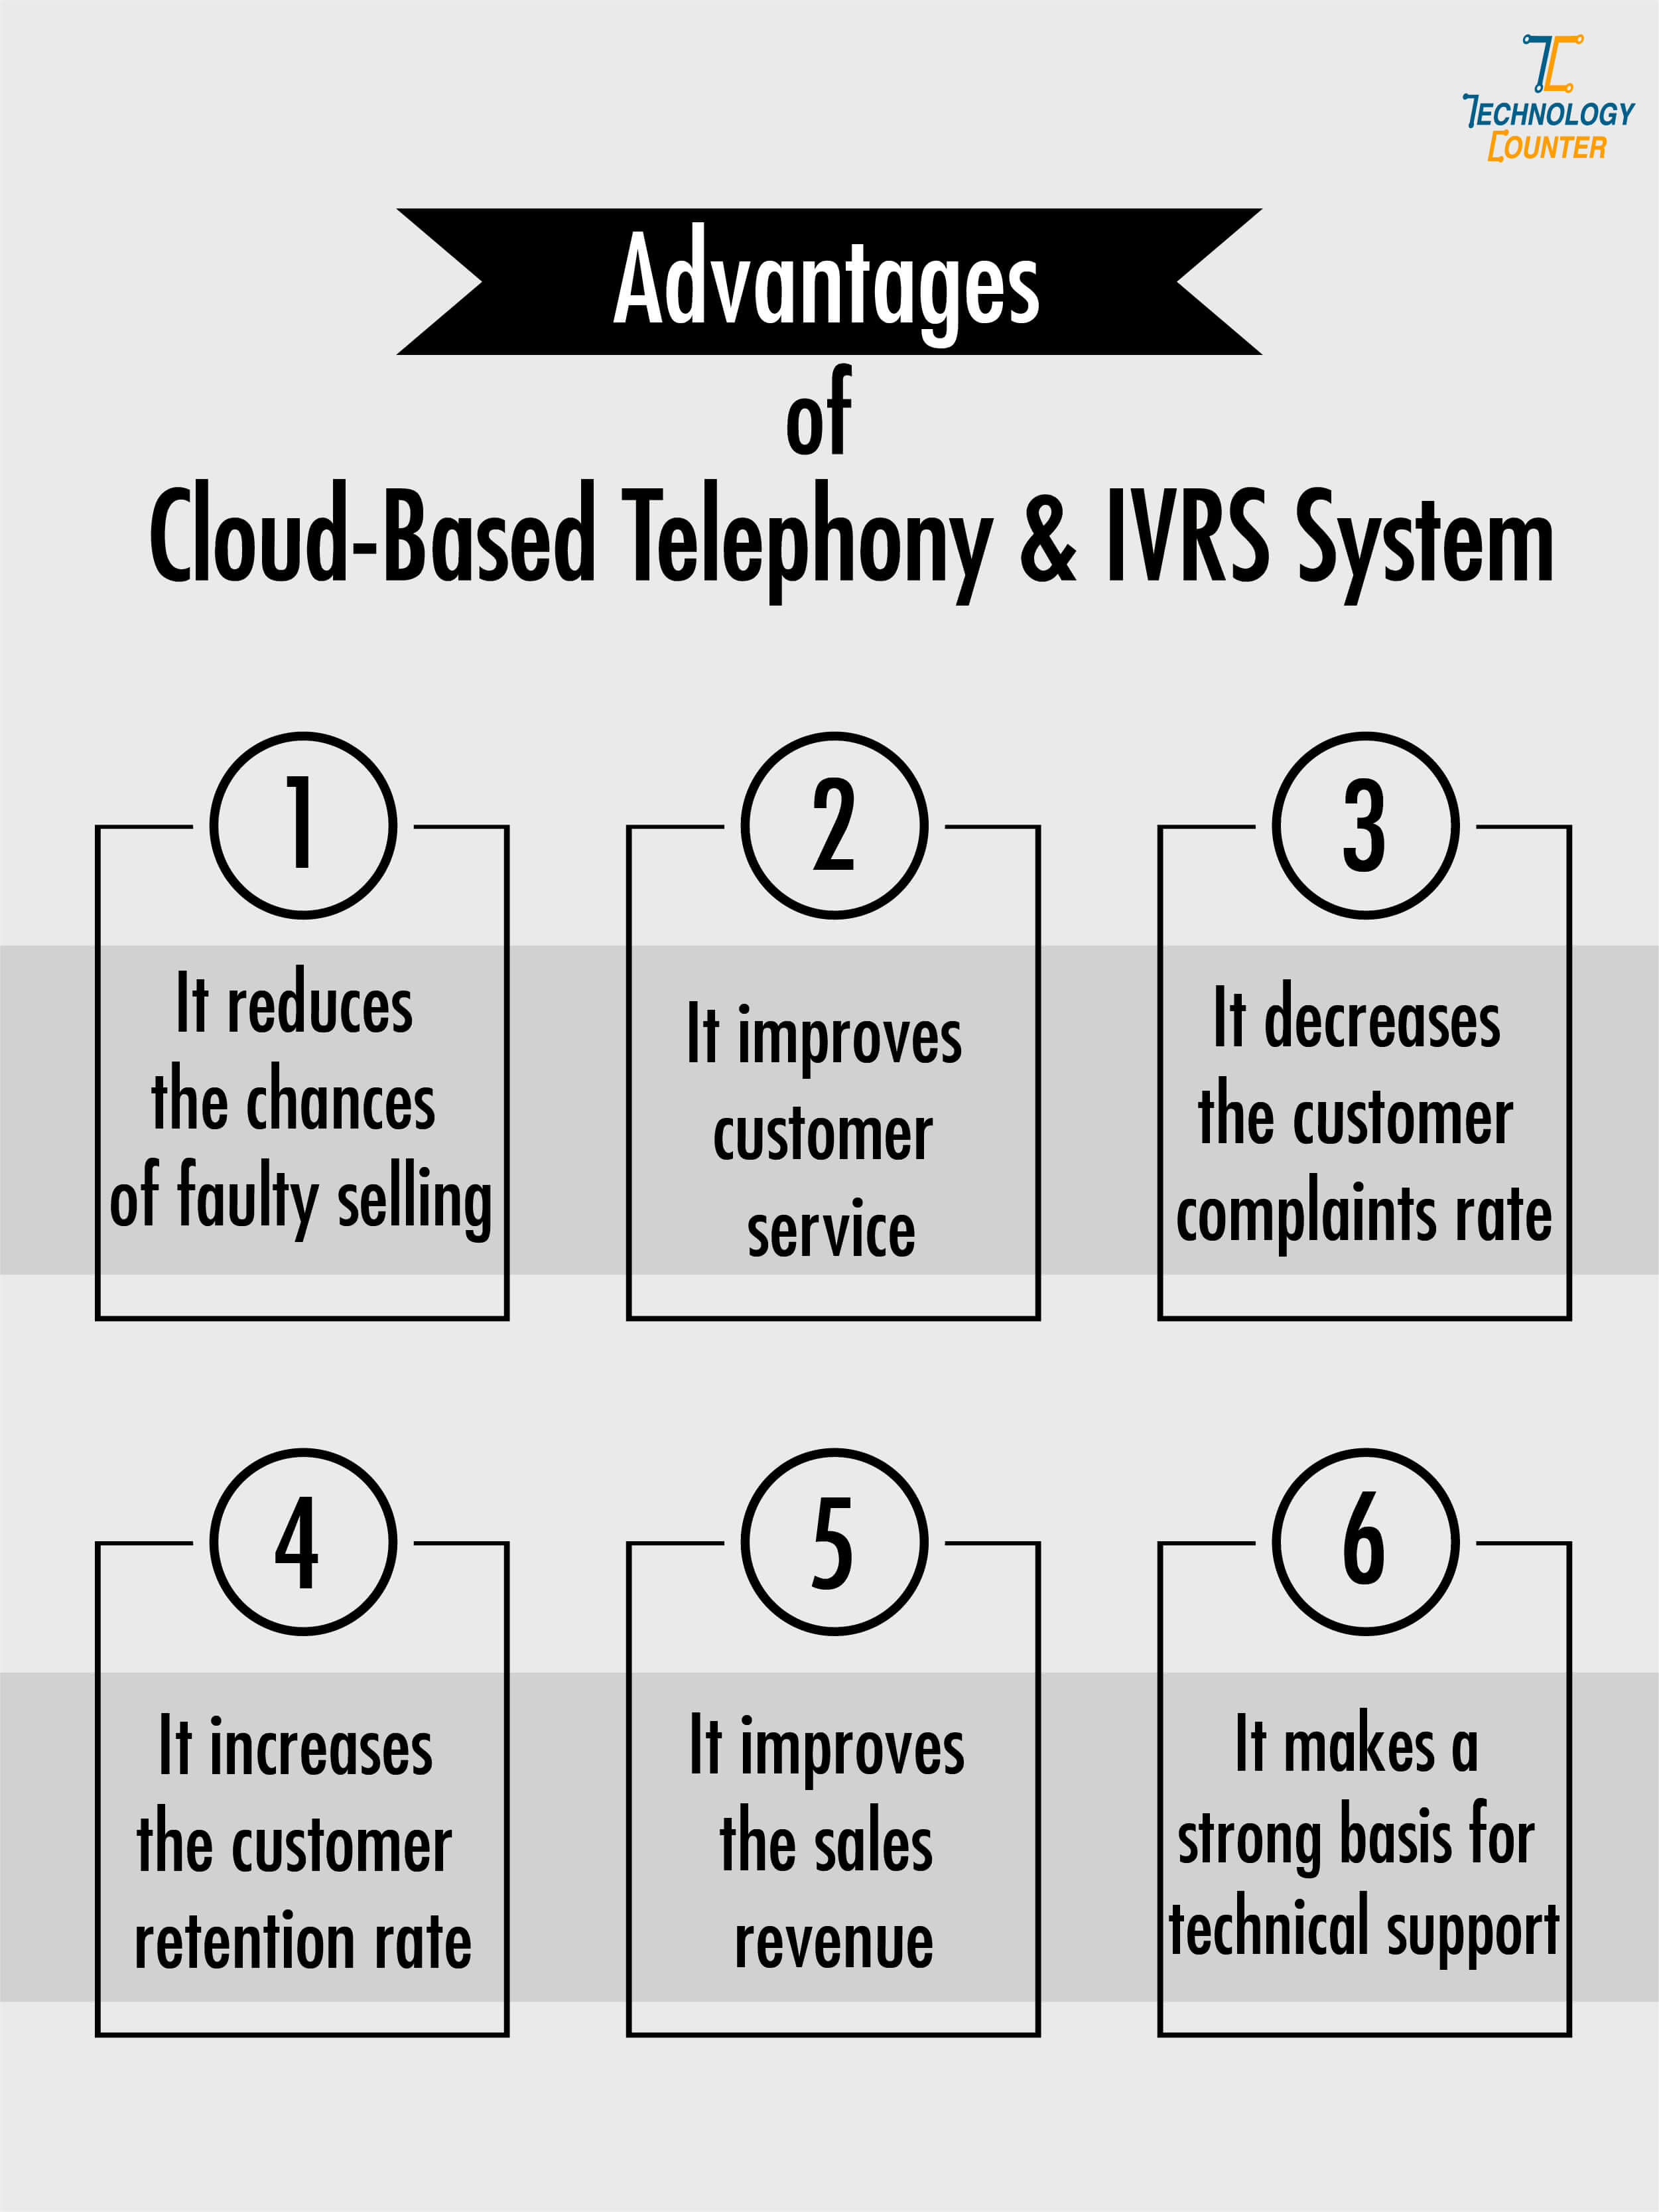 Advantages of Cloud Based Telephony and IVRS System